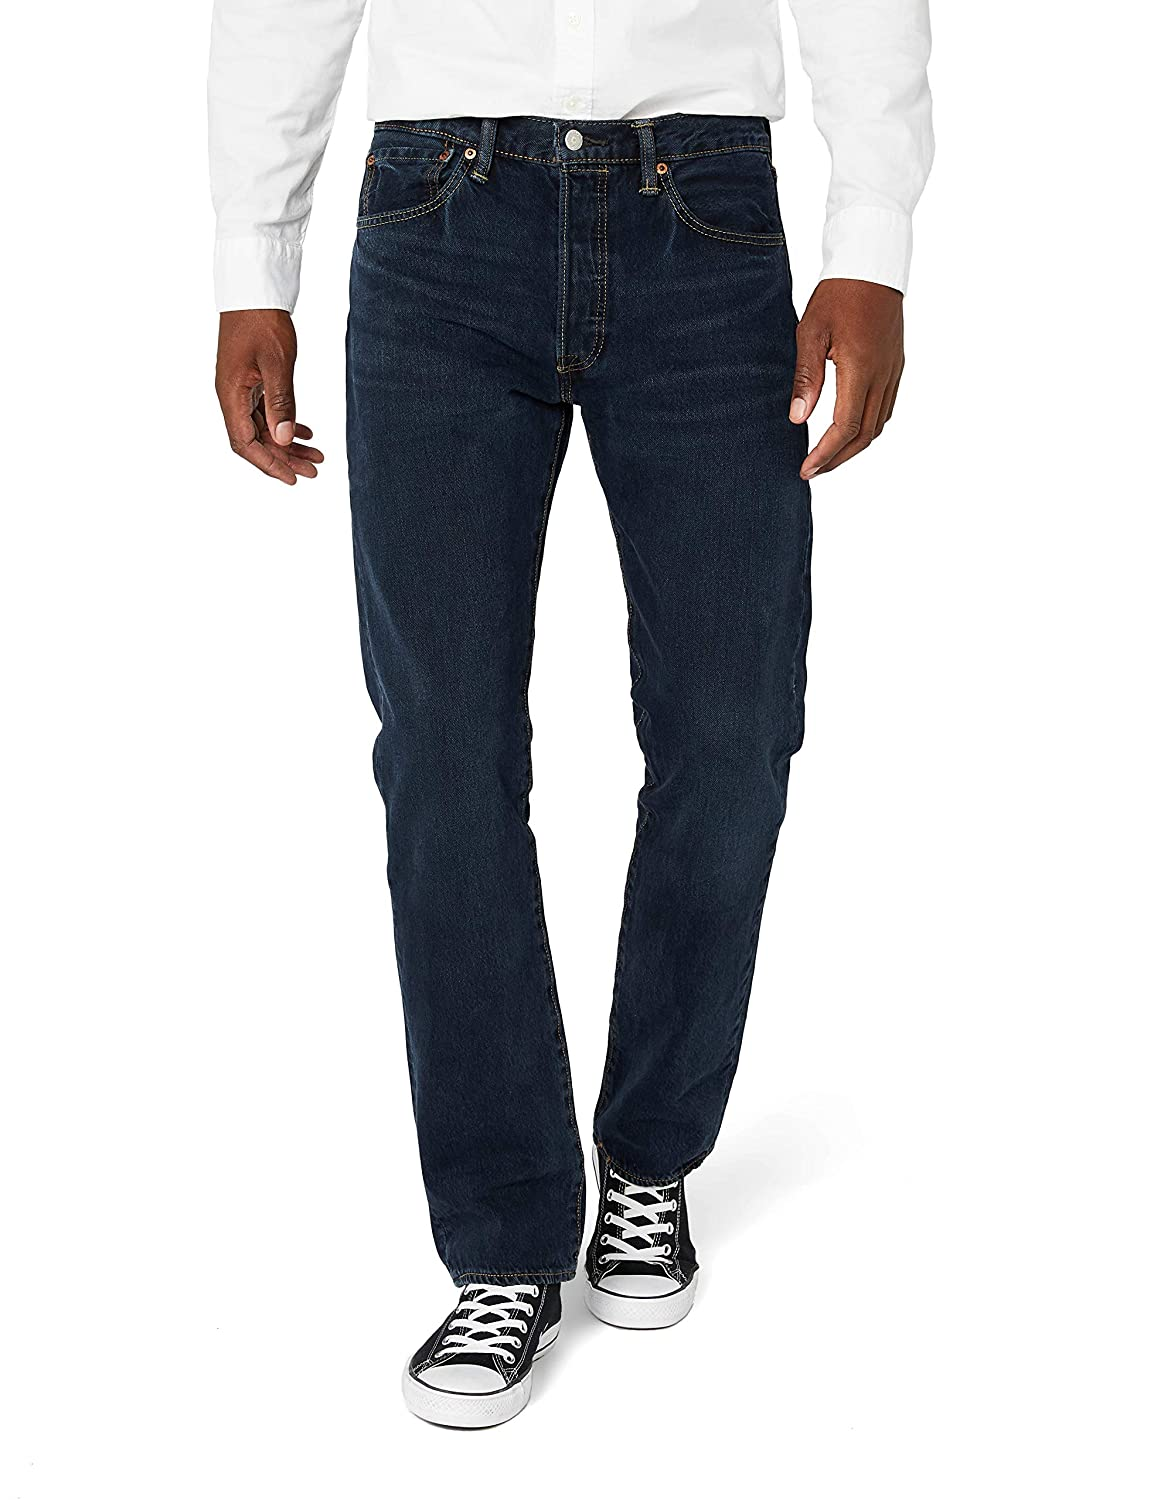 Levi's 501 Jeans 00501-2624 Original Fit in Dark Hours Blue Levi' s®